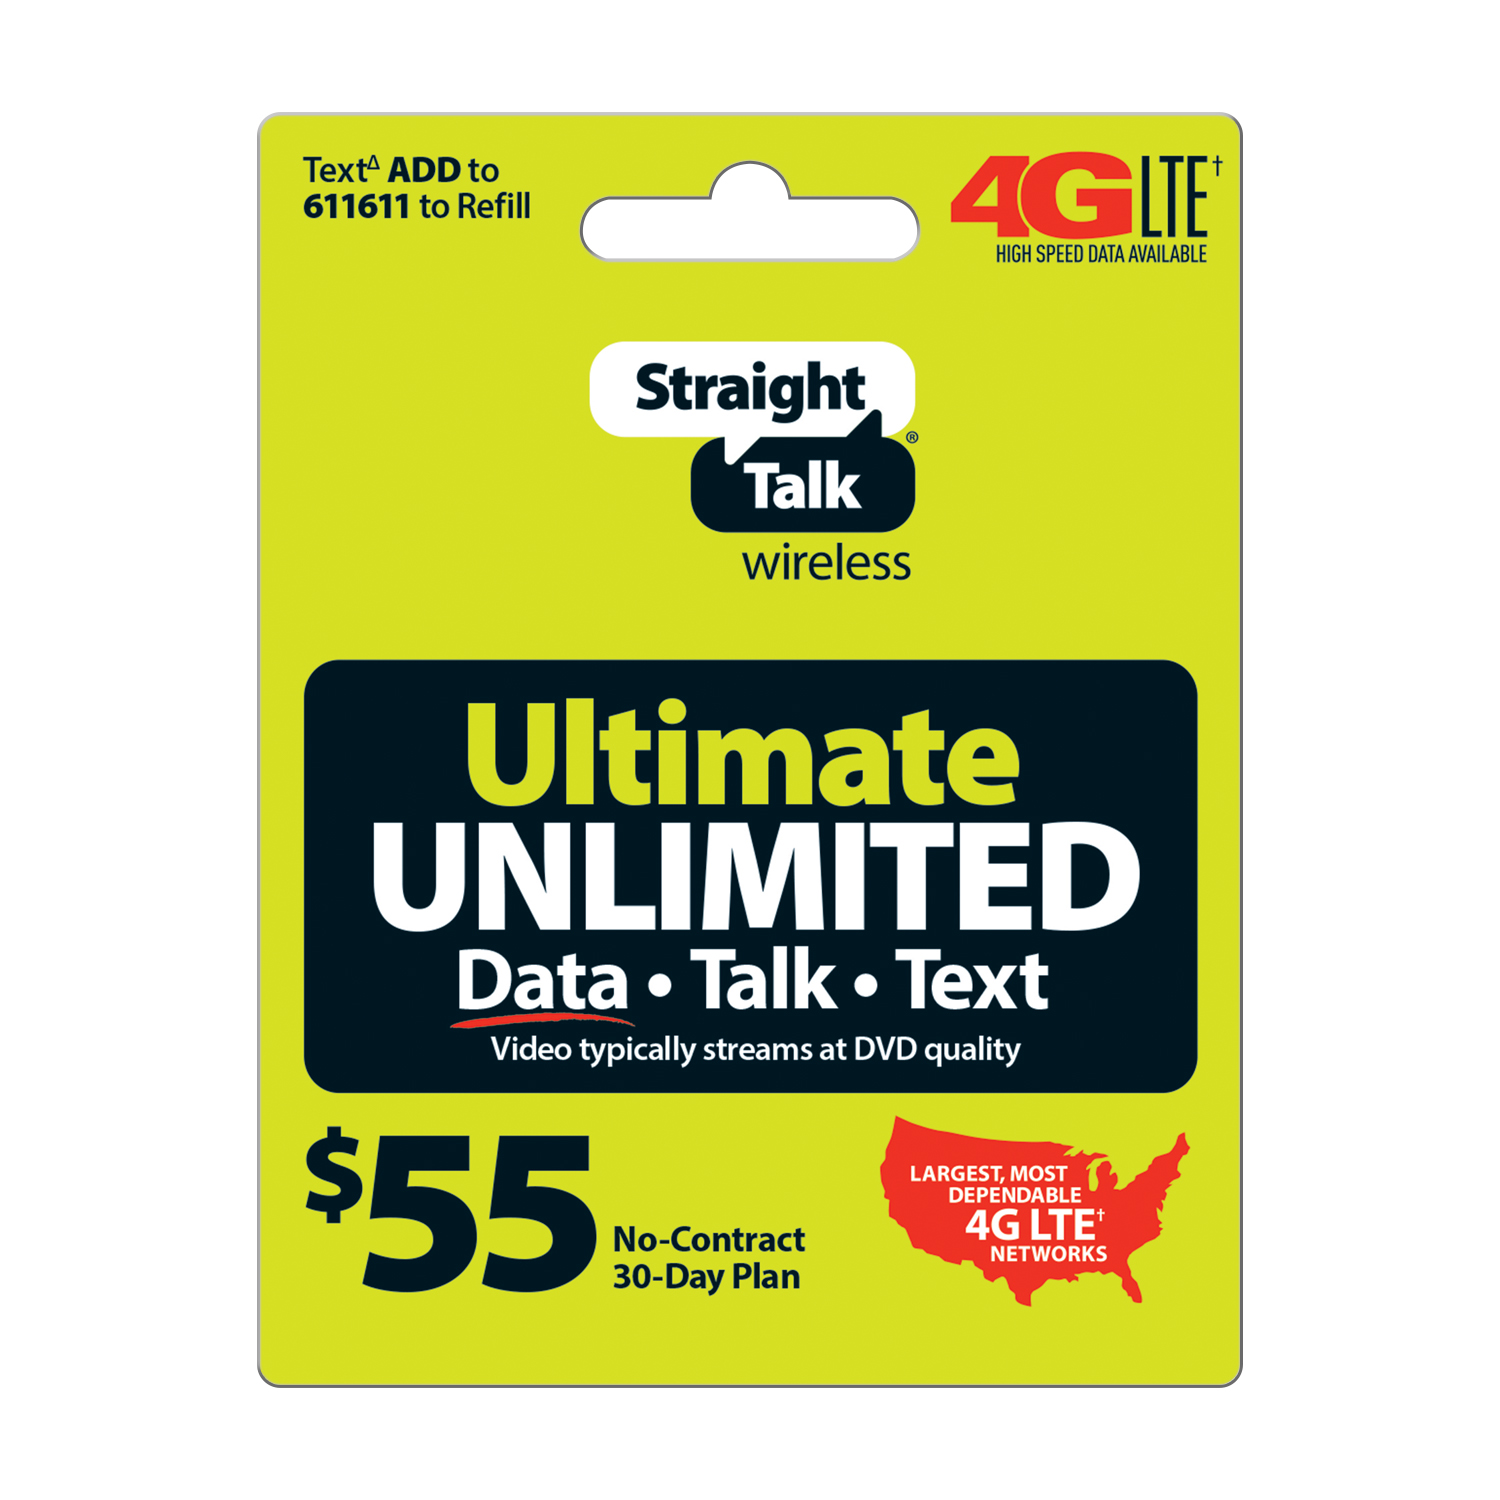 Straight Talk Ultimate Unlimited Prepaid Phone Plan, for No Contract Cell Phone Service, Unlimited 4G LTE Data+Talk+Text, $55